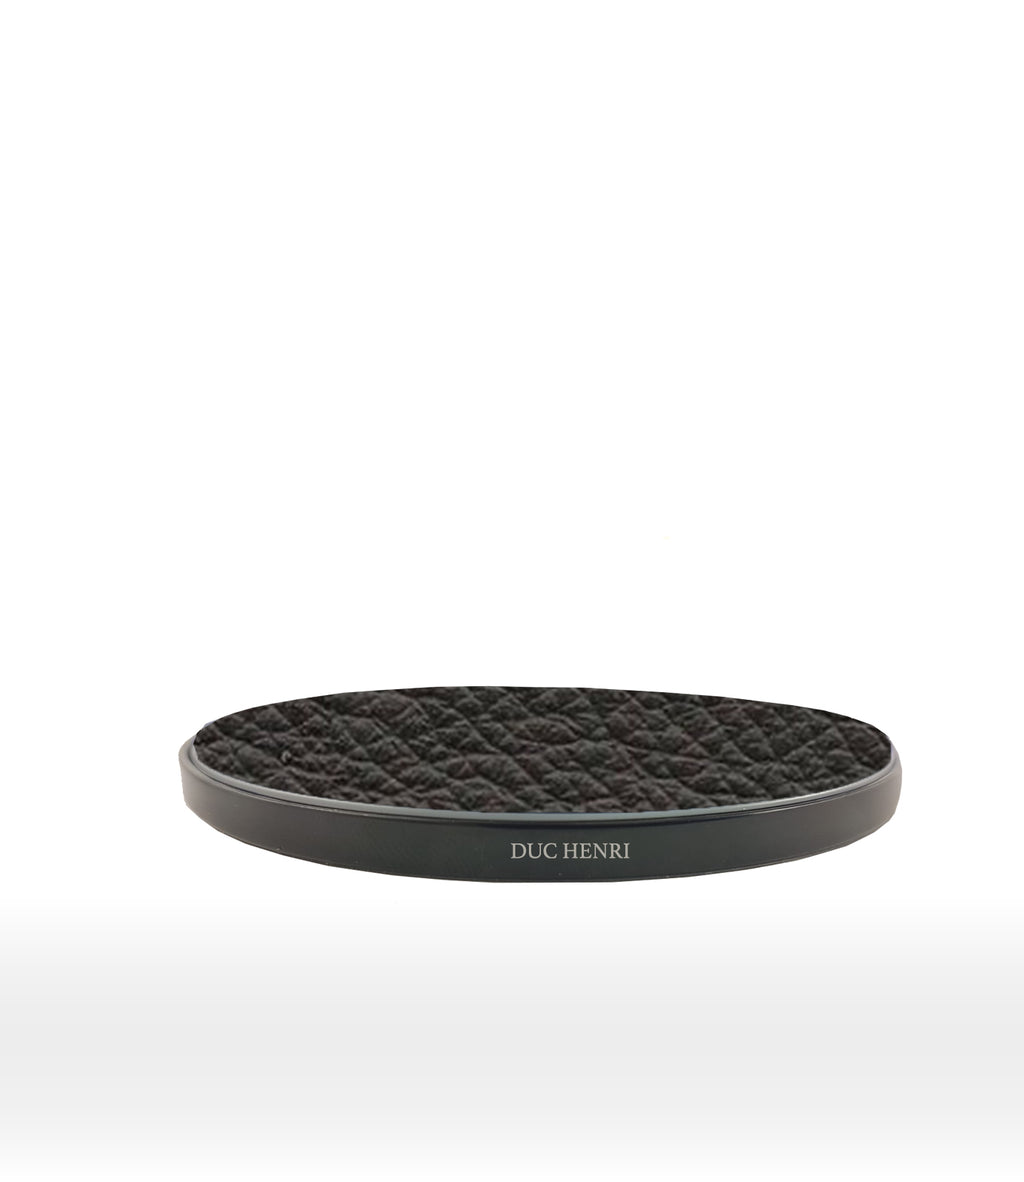 Black Calf leather custom wireless charger for smartphone duc henri hadoro